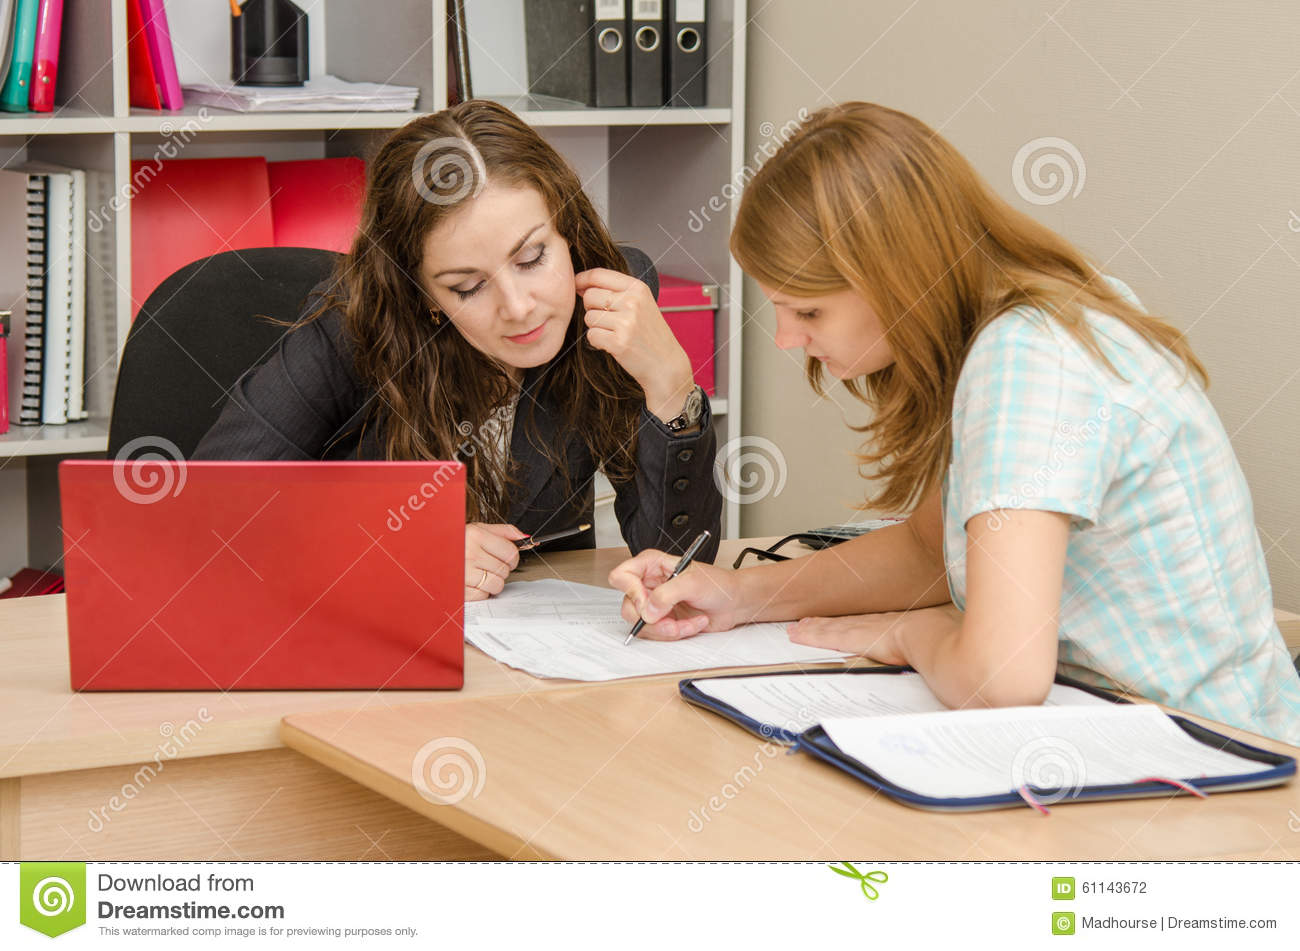 Girl and specialist office editing text in a paper document